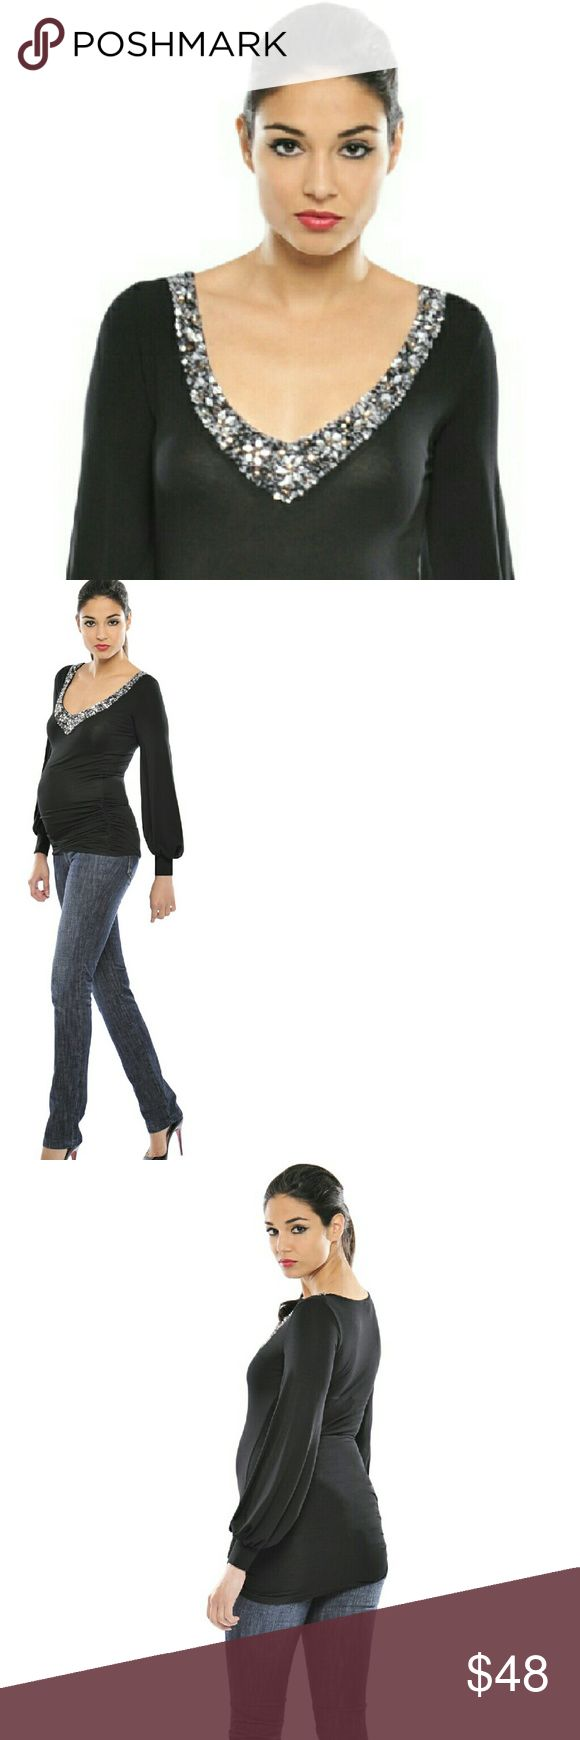 Olian NWT Maternity Gorgeous  Party Top Shirt L You've been looking all over for the perfect top to wear to that holiday party and now you found it! This absolutely beautiful V-neck top from Olian Maternity is perfect for any event including New Year's Eve! The fabric is delicious and the length is perfect, and as with all Olian items, you will wear this again and again because good clothes last forever.? Please check out our other maternity listings and enjoy your pregnancy! Olian Tops